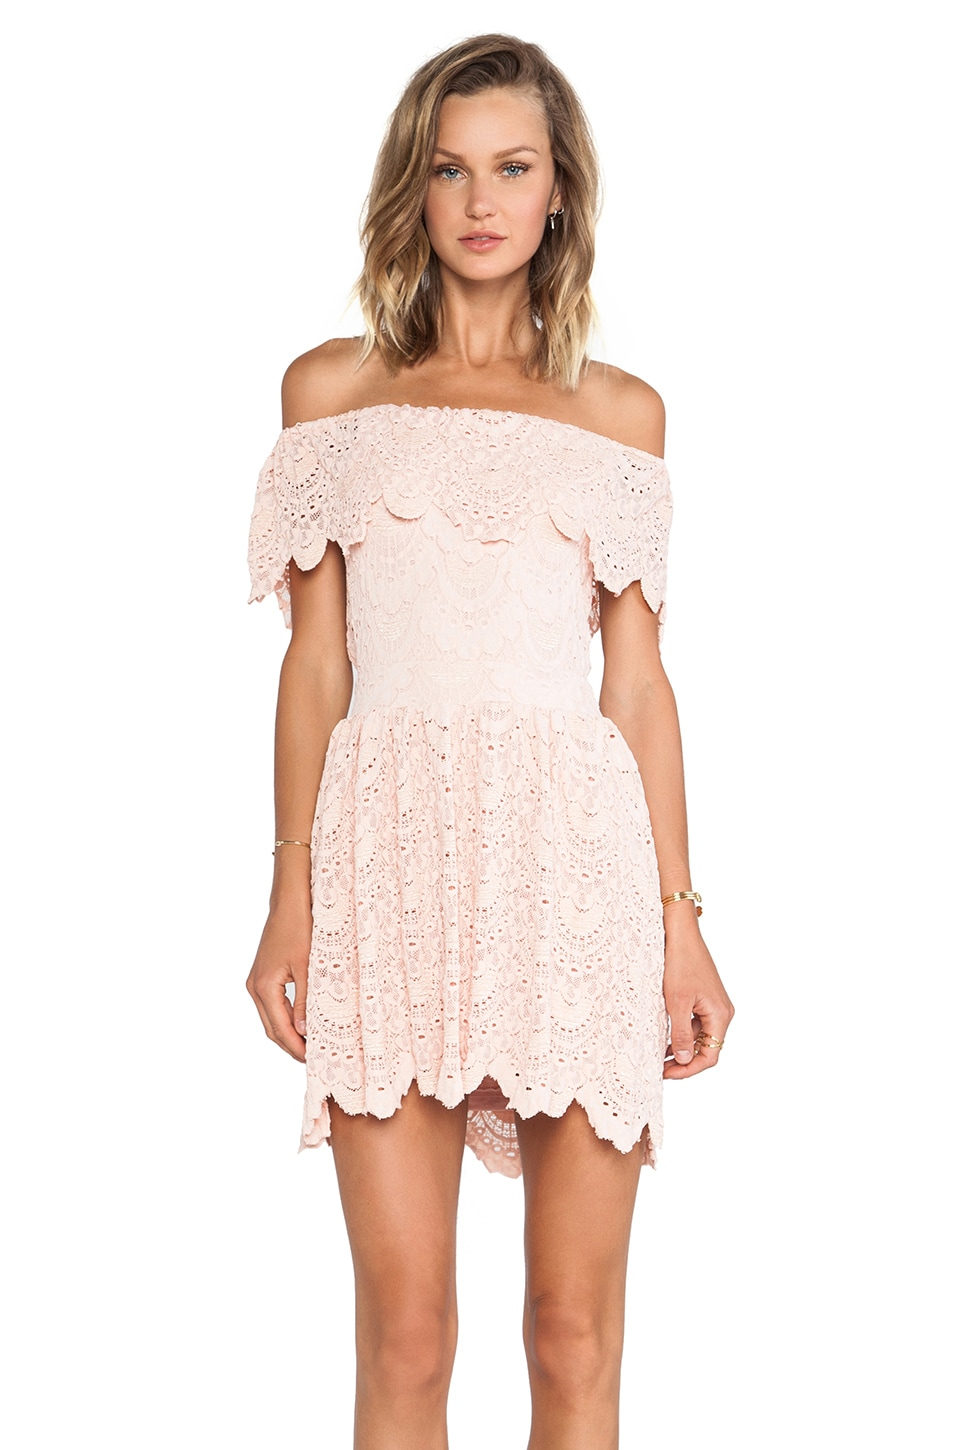 Nightcap Riviera Fit 'n Flare Dress in Soft Peach